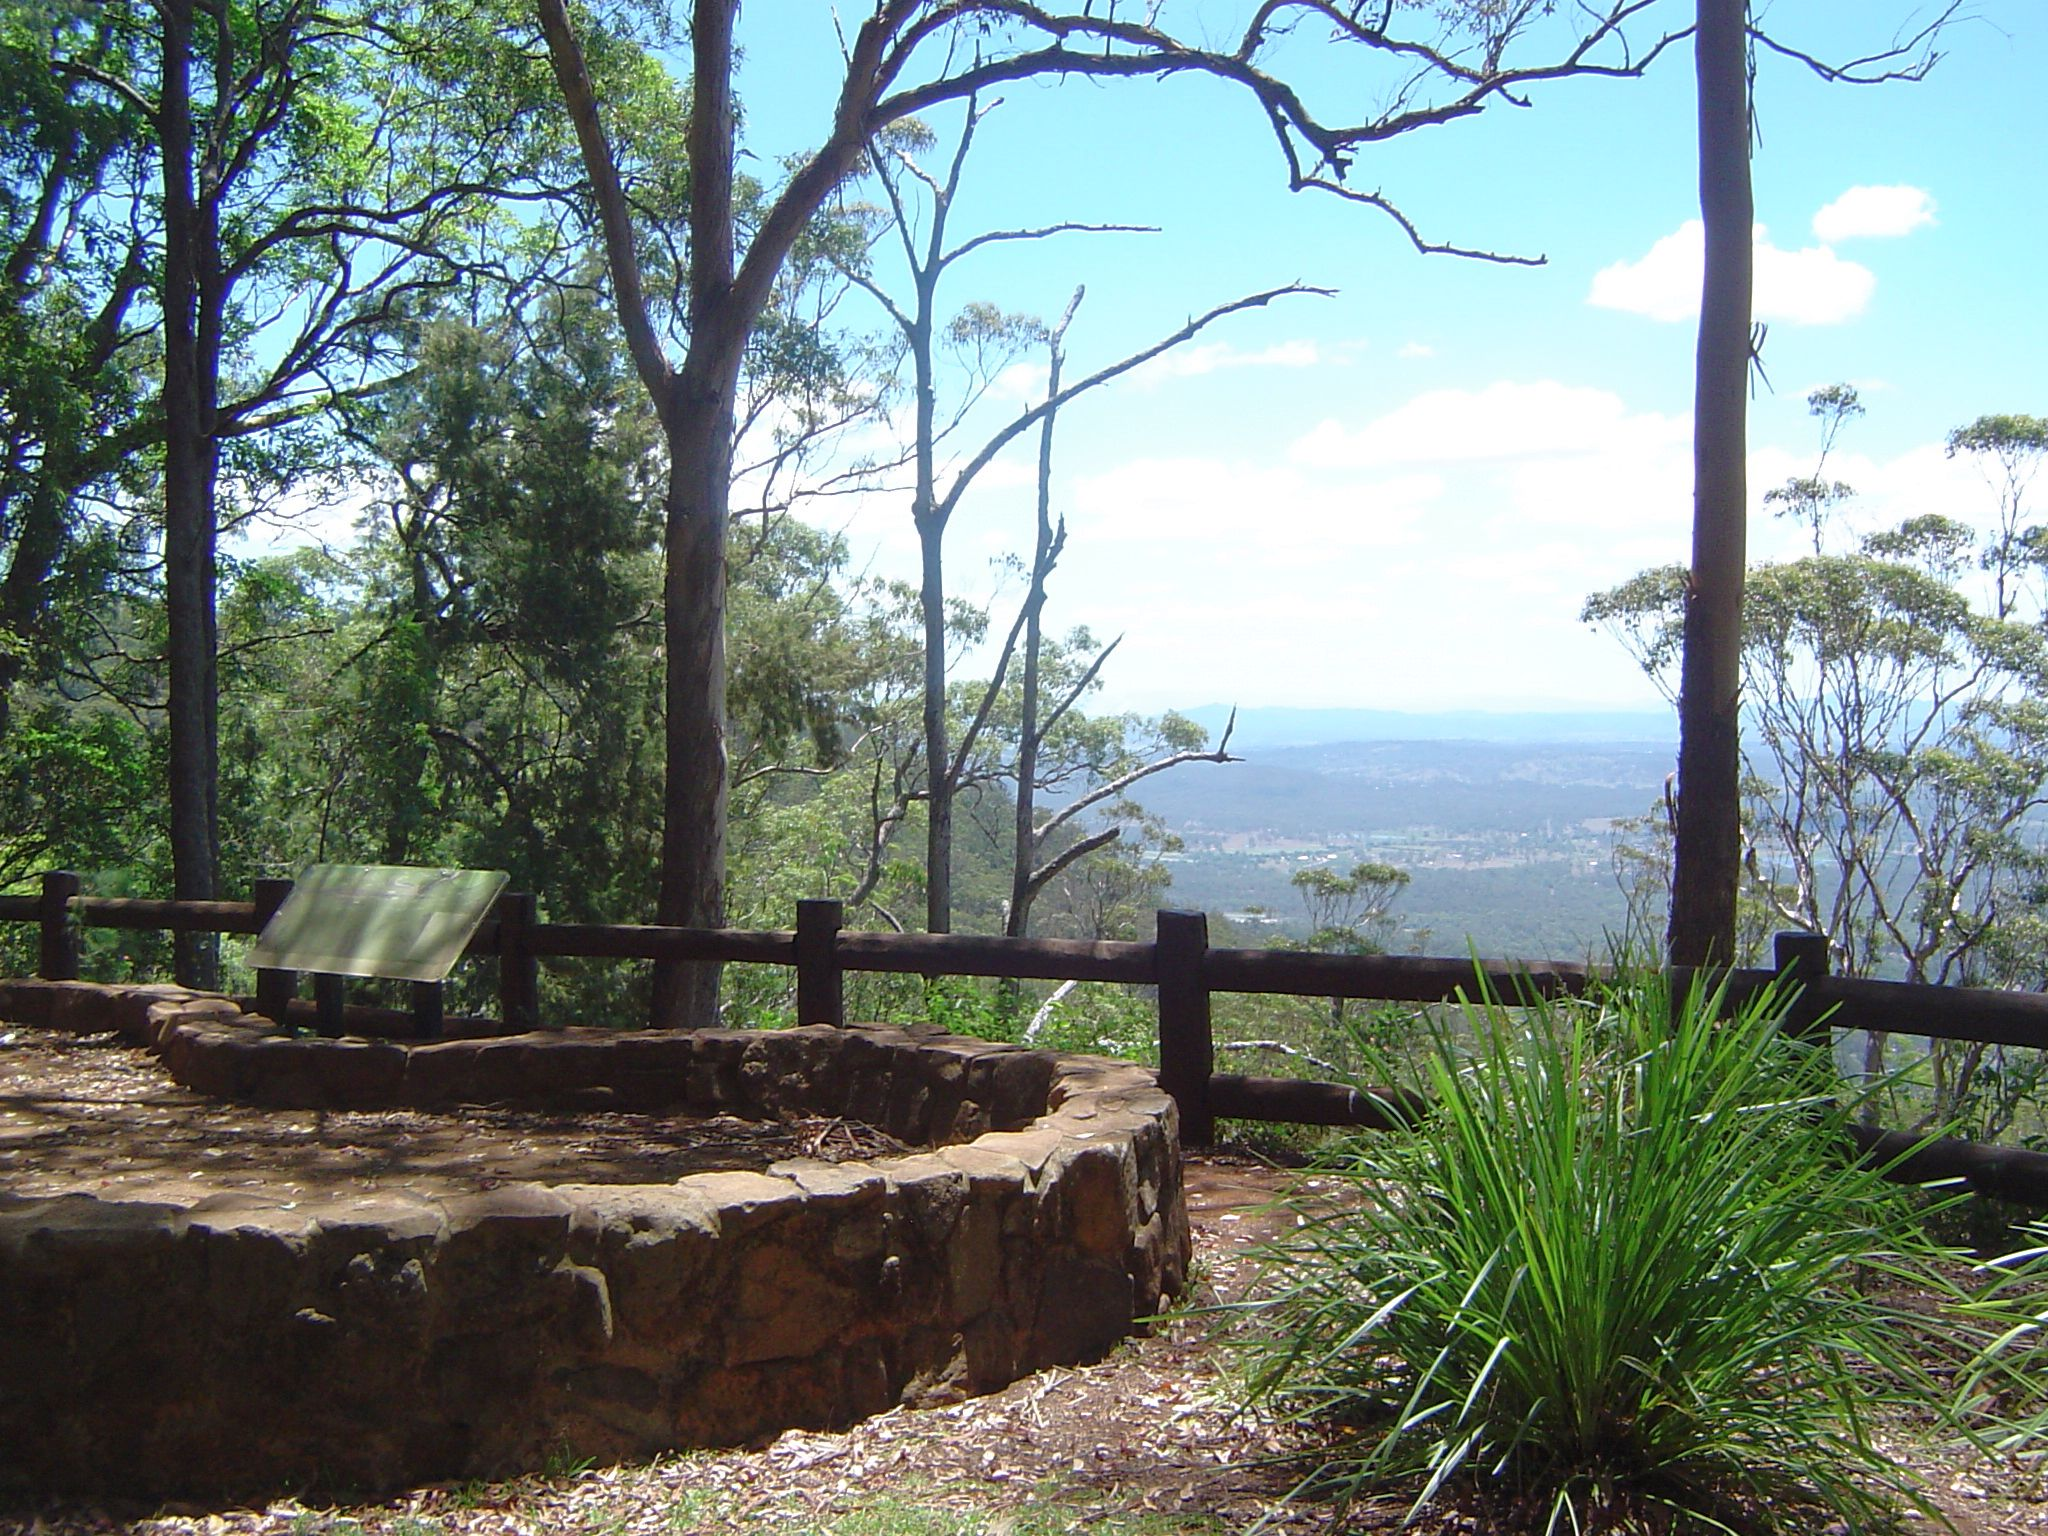 FileThe Knoll Lookout Tamborine MountainJPG